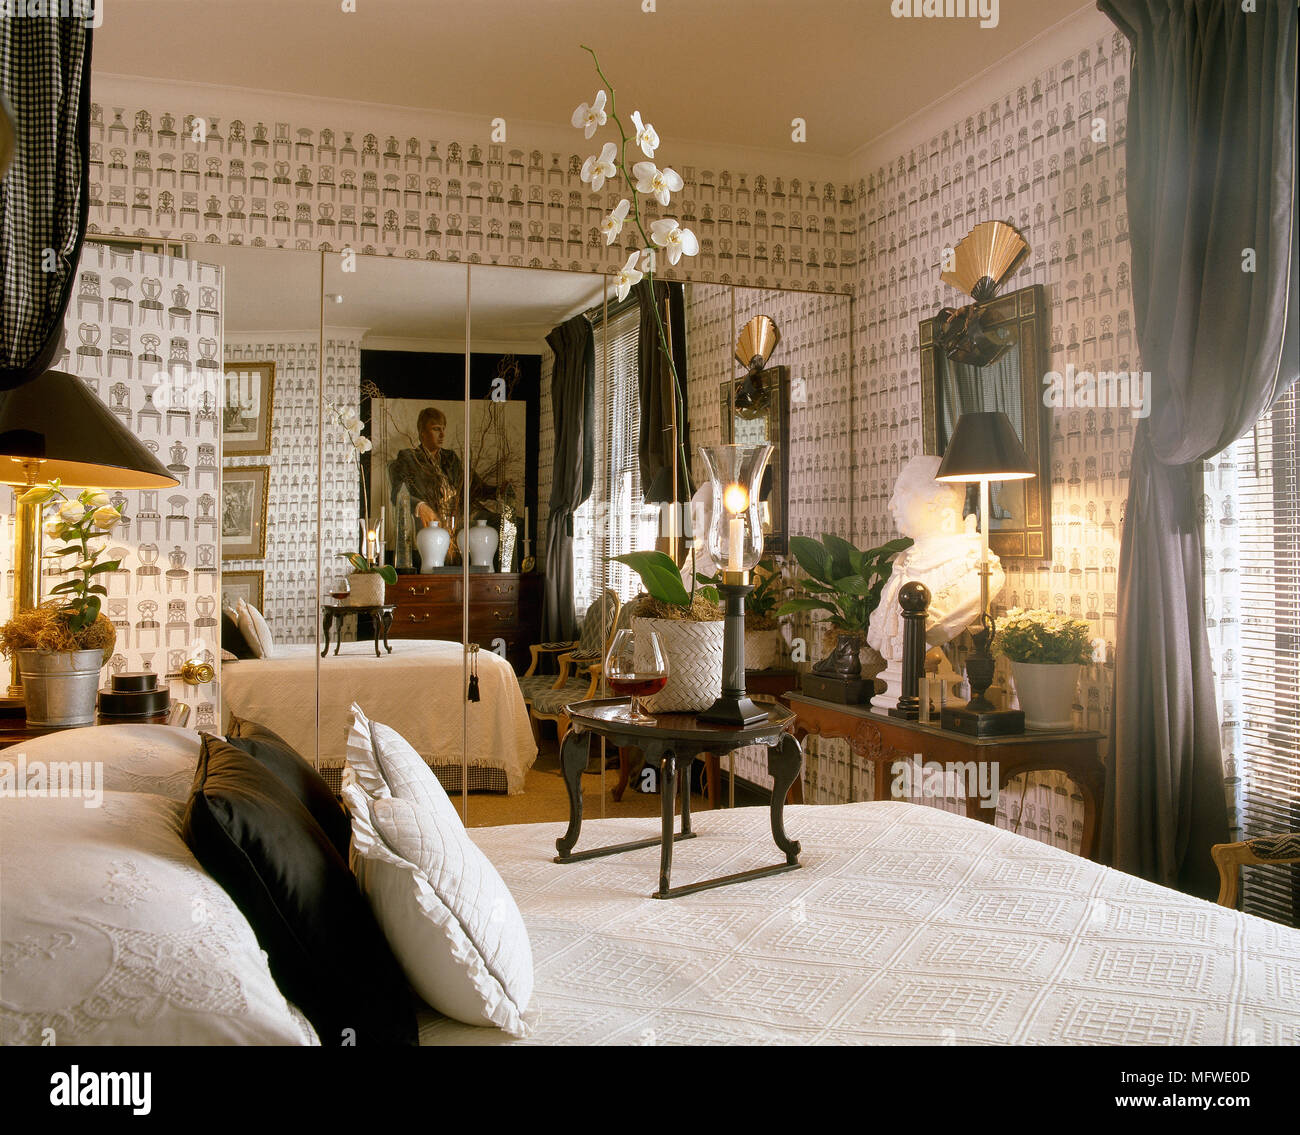 double bed in bedroom with pattern wallpaper and built in mirrored